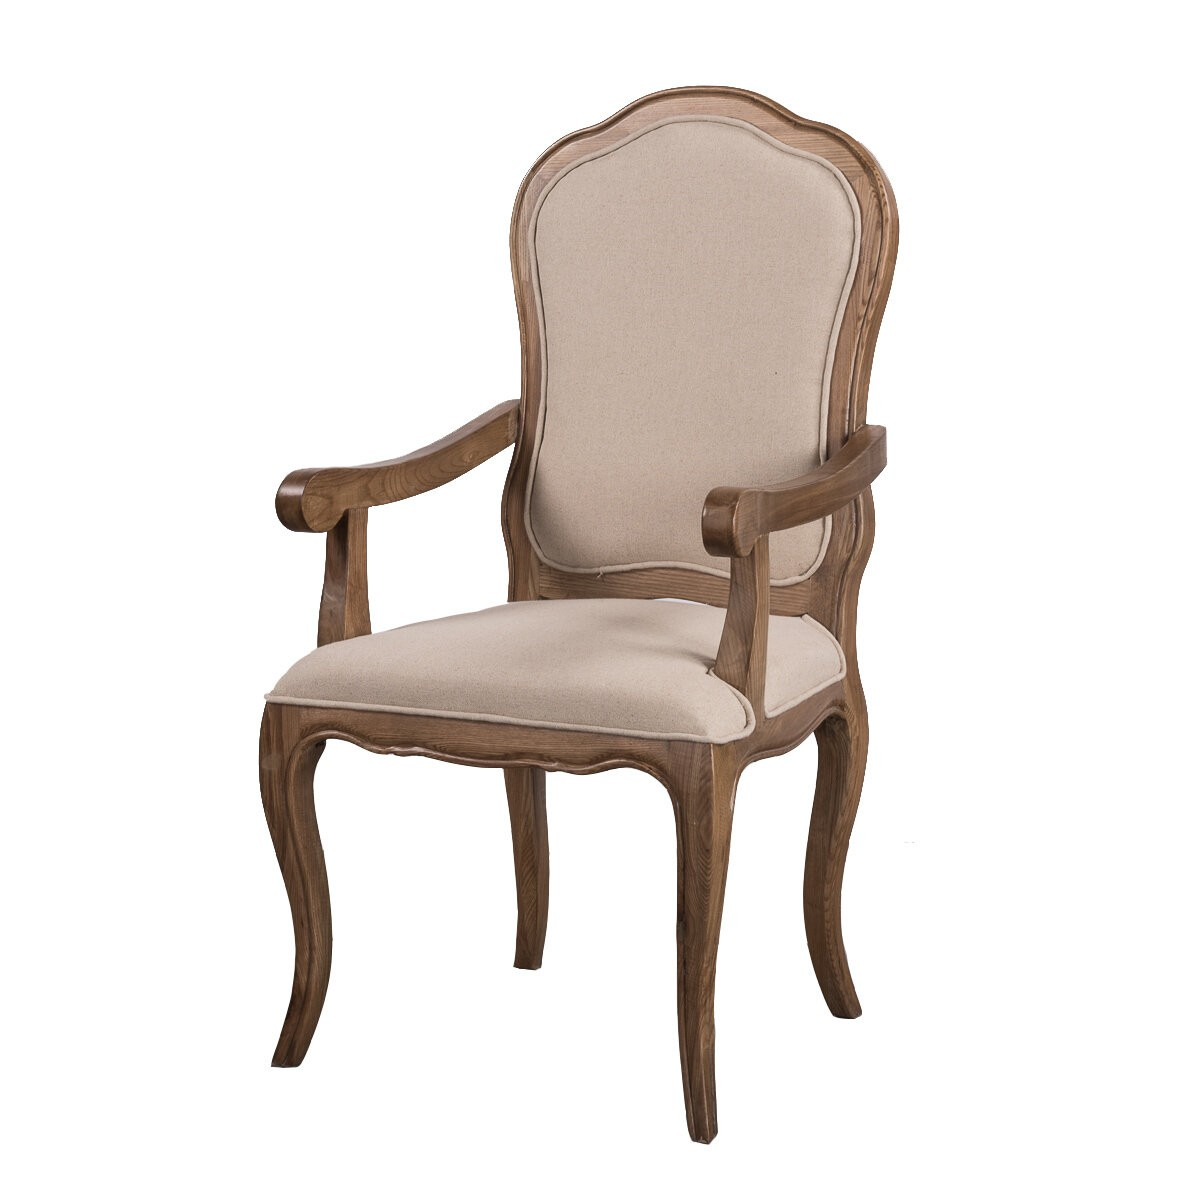 Oak Chairs With Arms ~ French provincial furniture natural oak dining arm chair